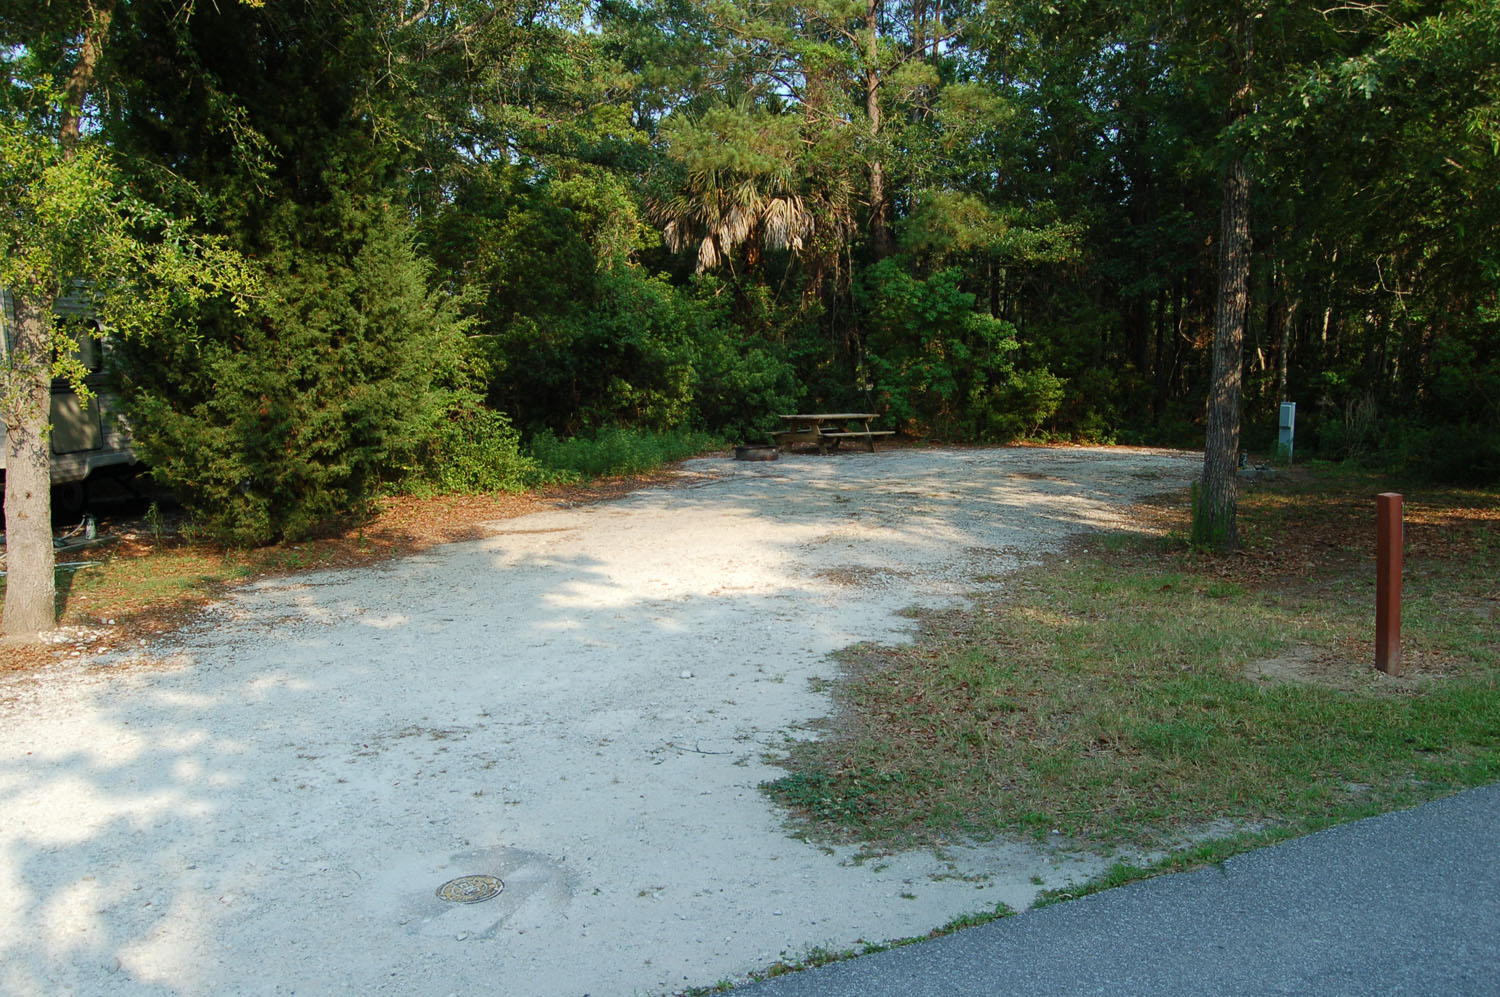 Image of campsite #58 at the Campground at James Island County Park